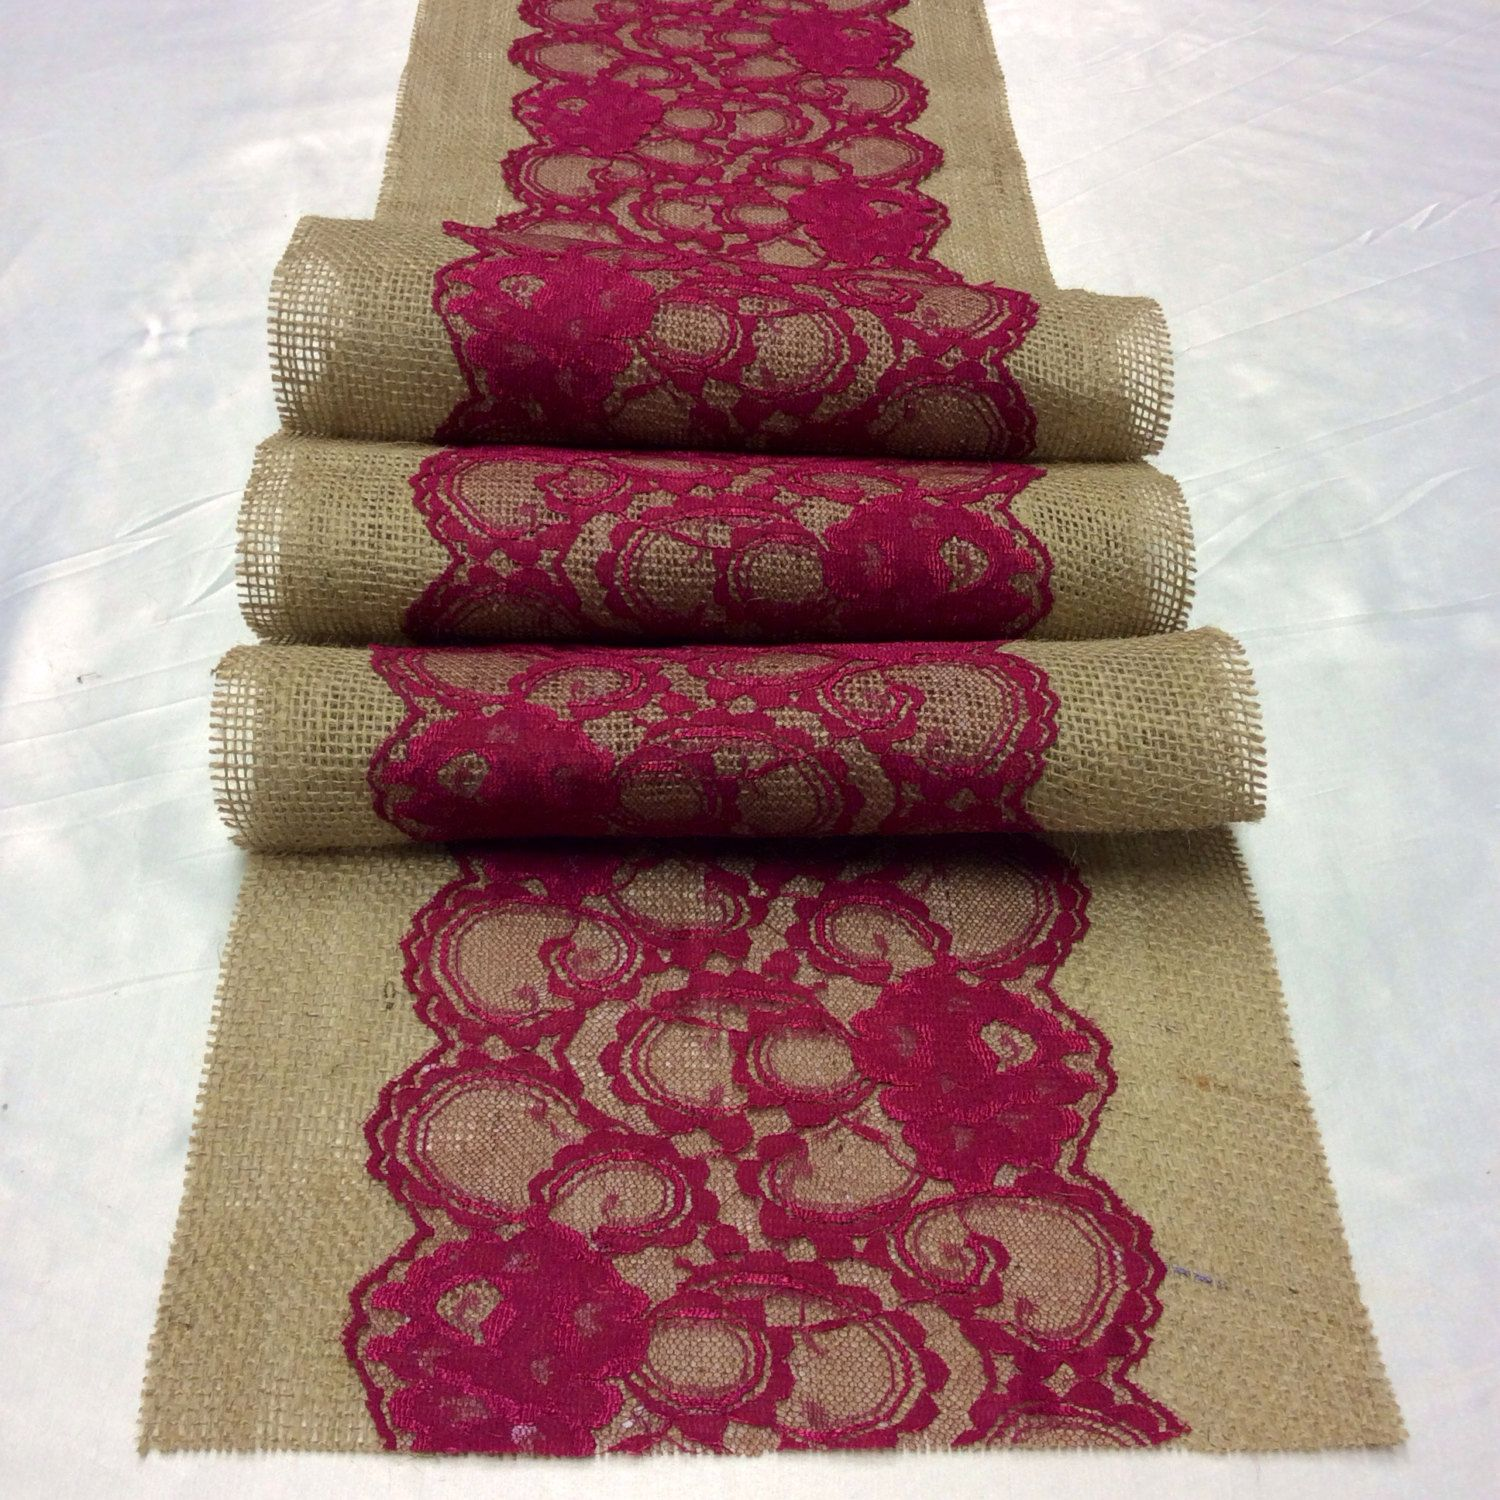 Burgundy Lace Table Runners | Request A Custom Order And Have Something  Made Just For You